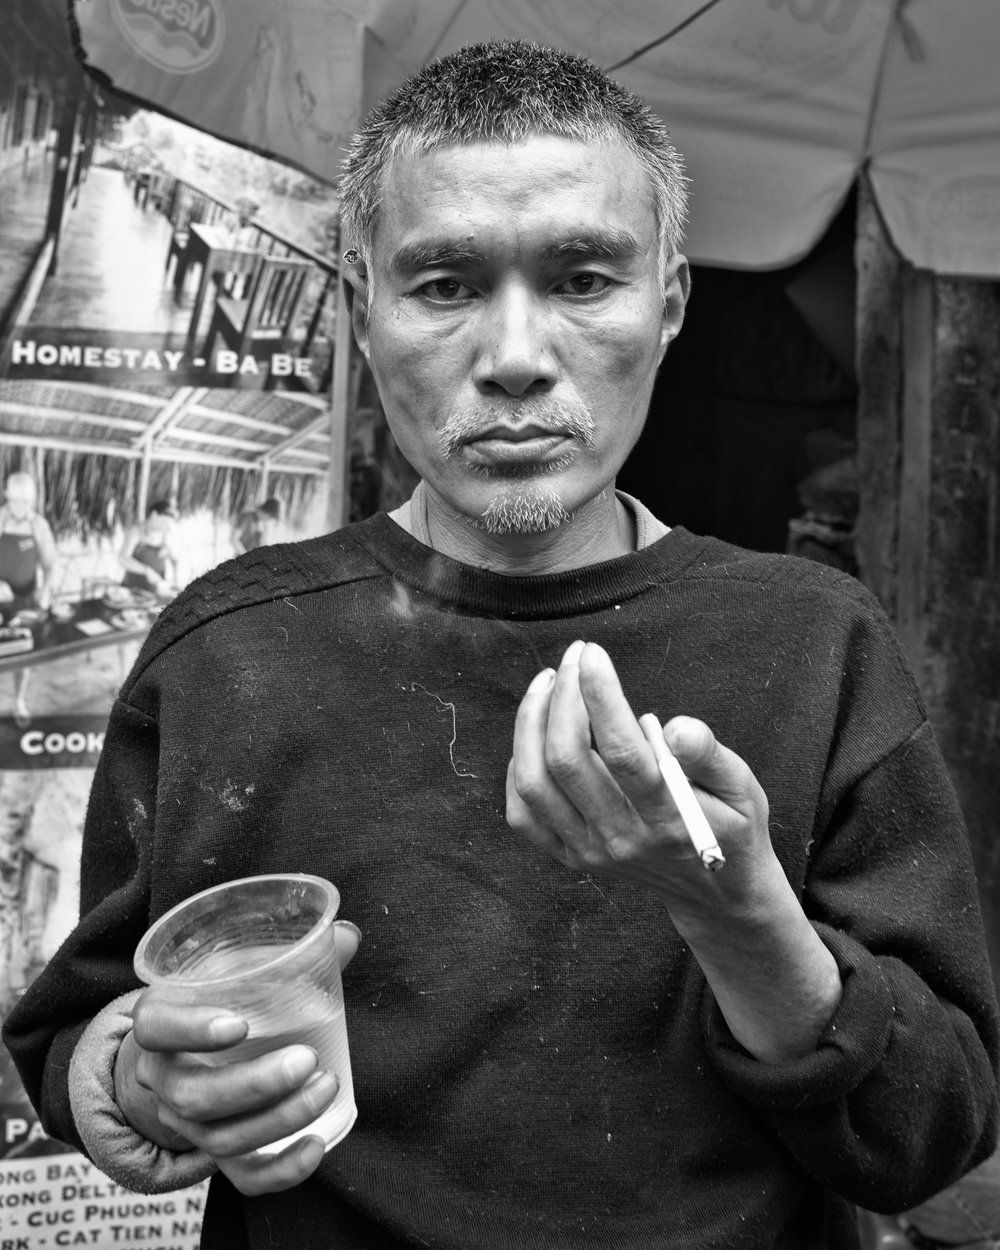 afternoon drinker, hanoi